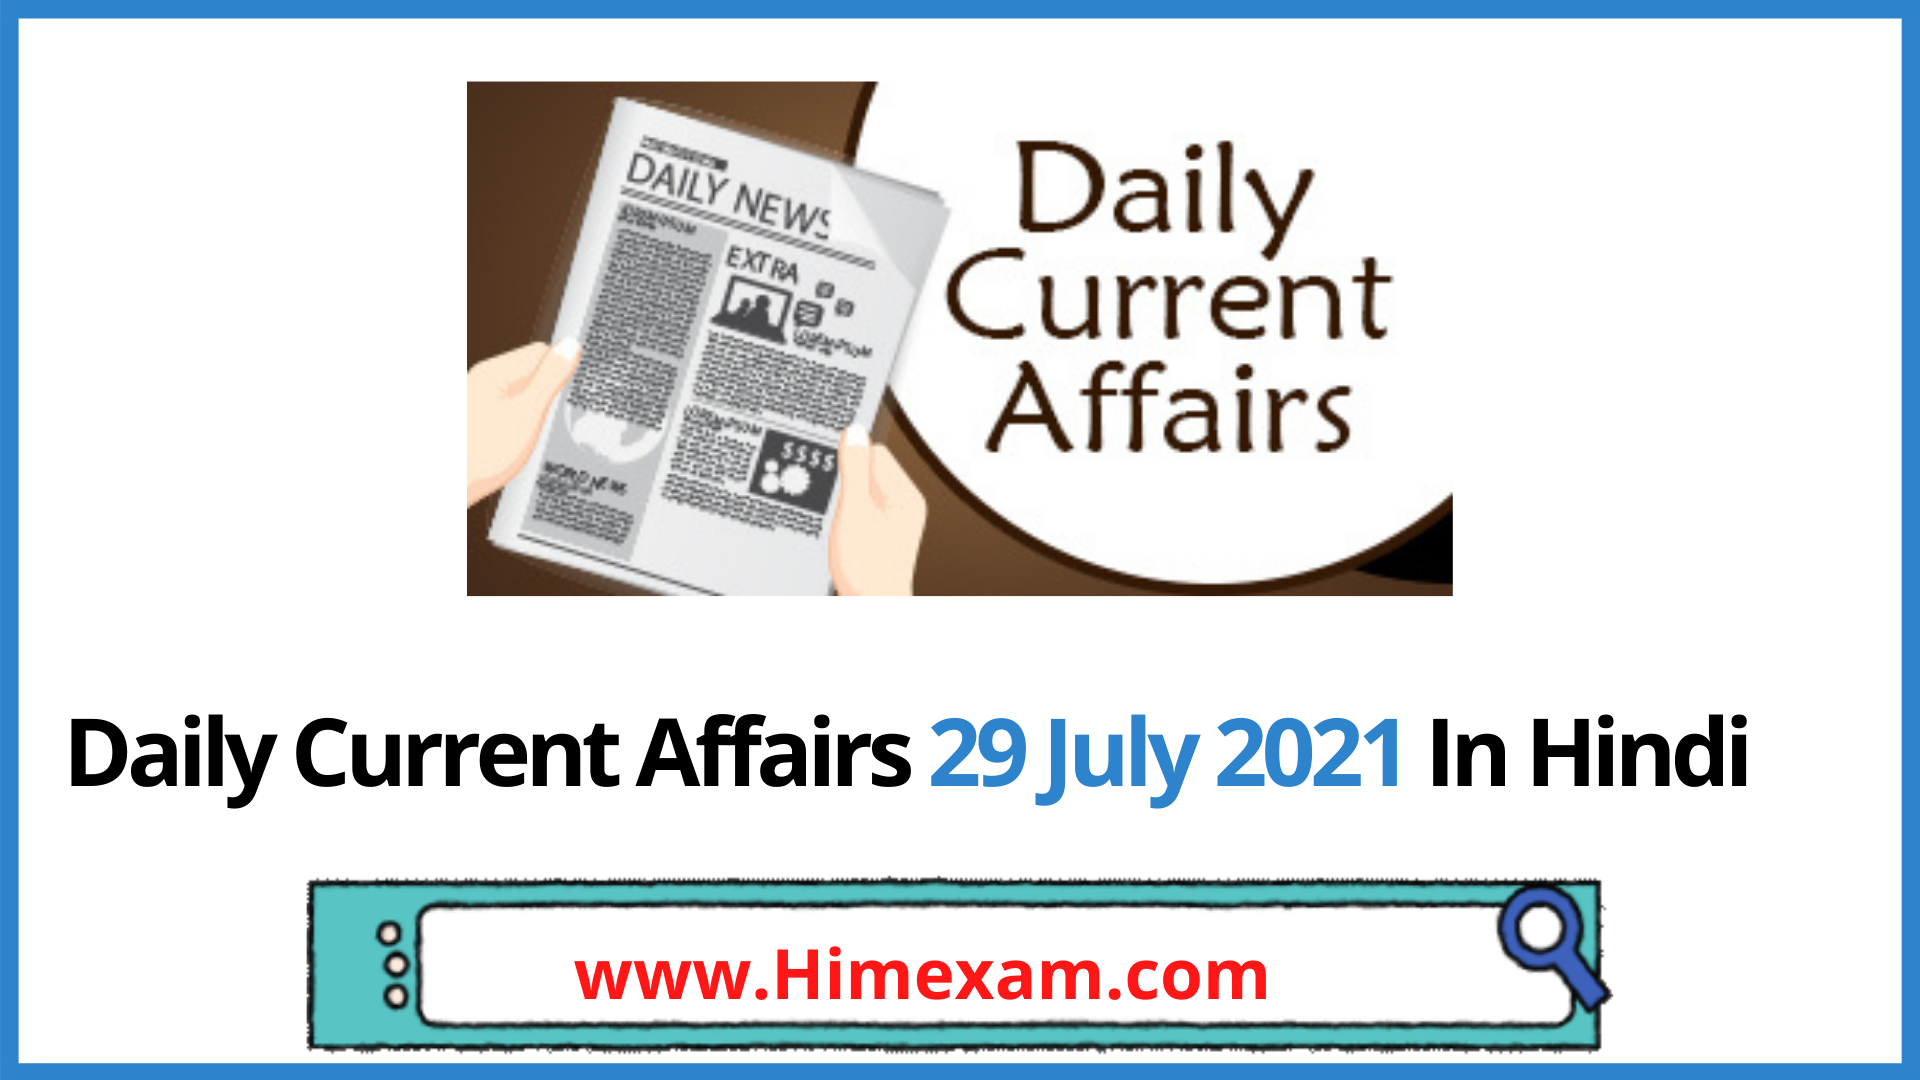 Daily Current Affairs 29 July 2021 In Hindi